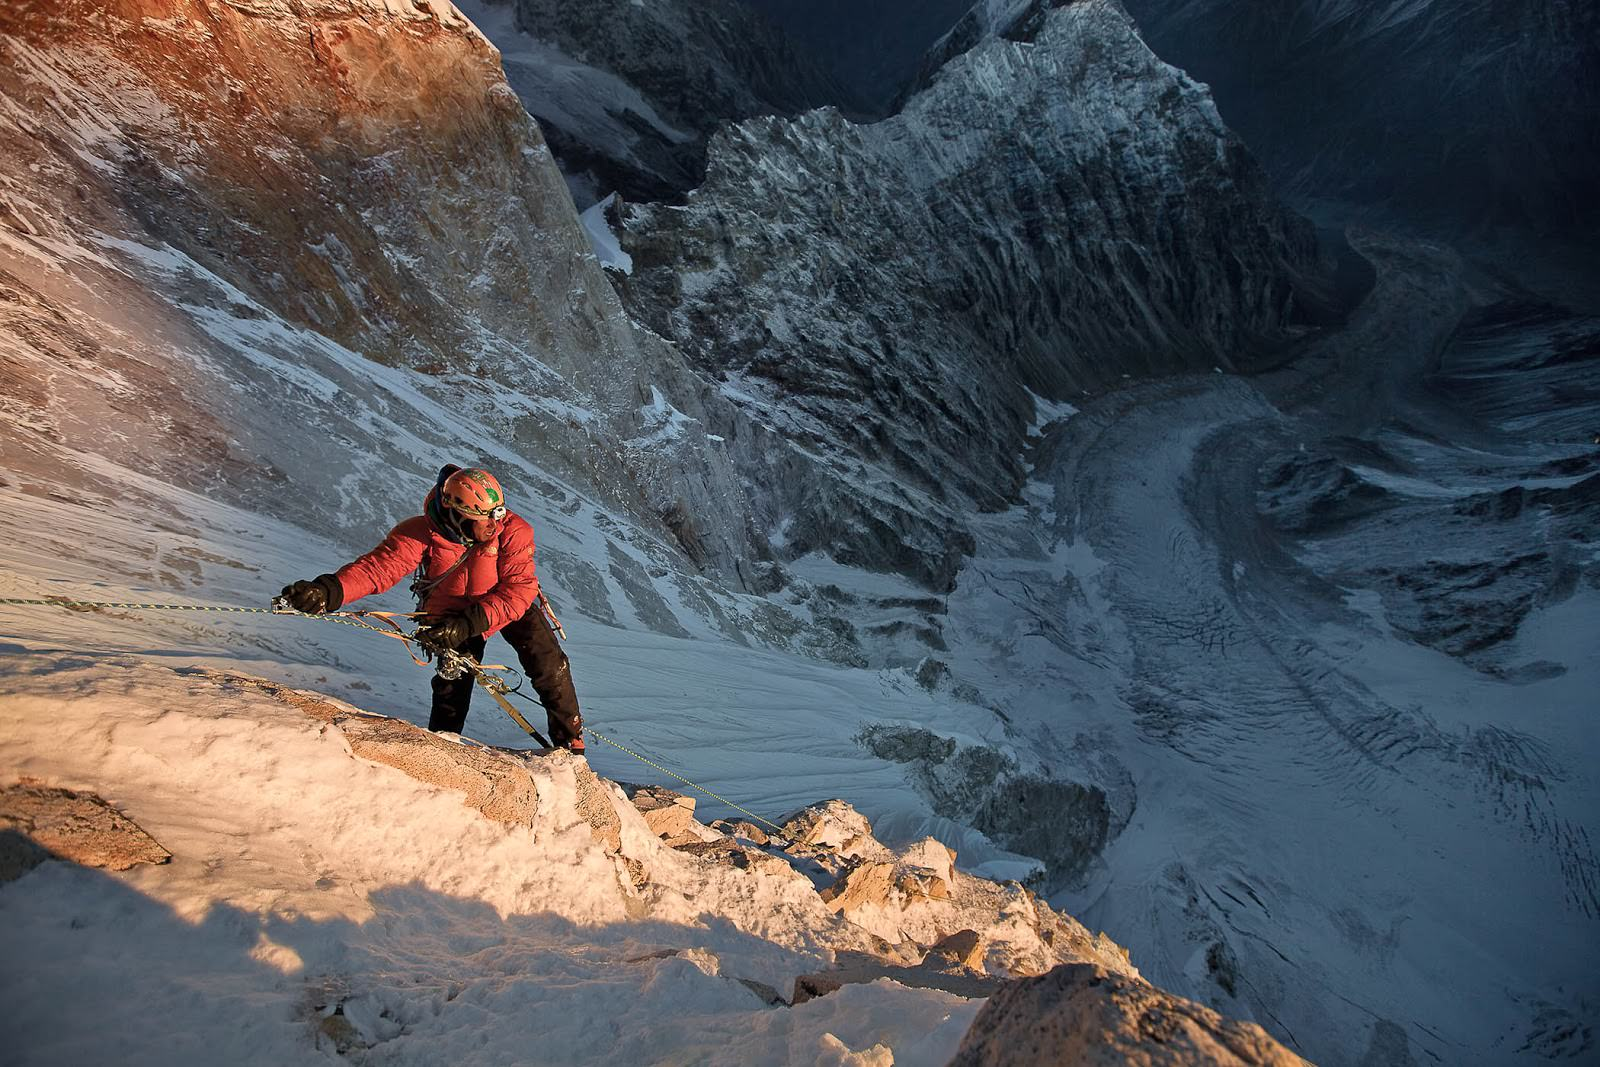 Jimmy Chin at first light on the 11th day of climbing